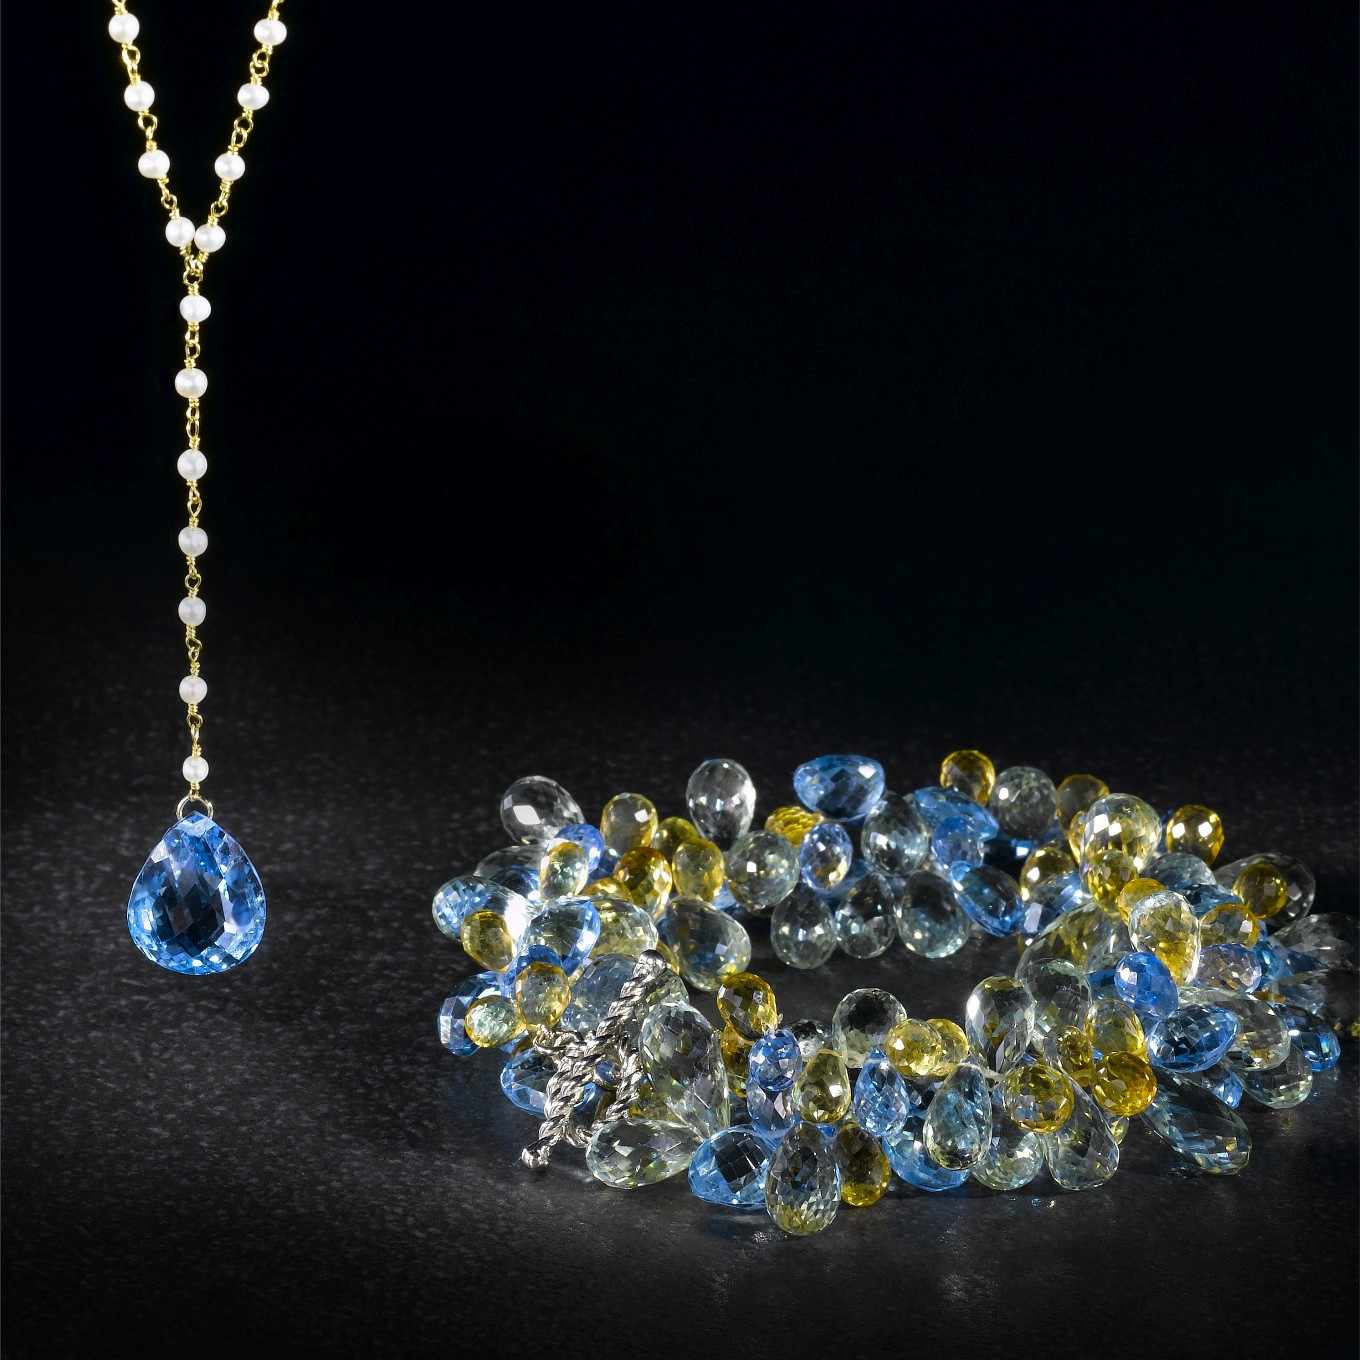 NATURAL PEARL DROP NECKLACE WITH PEAR SHAPED BLUE TOPAZ. BRIOLETTE NECKLACE WITH GREENAMETHYST, BLUE TOPAZ & CITRINE